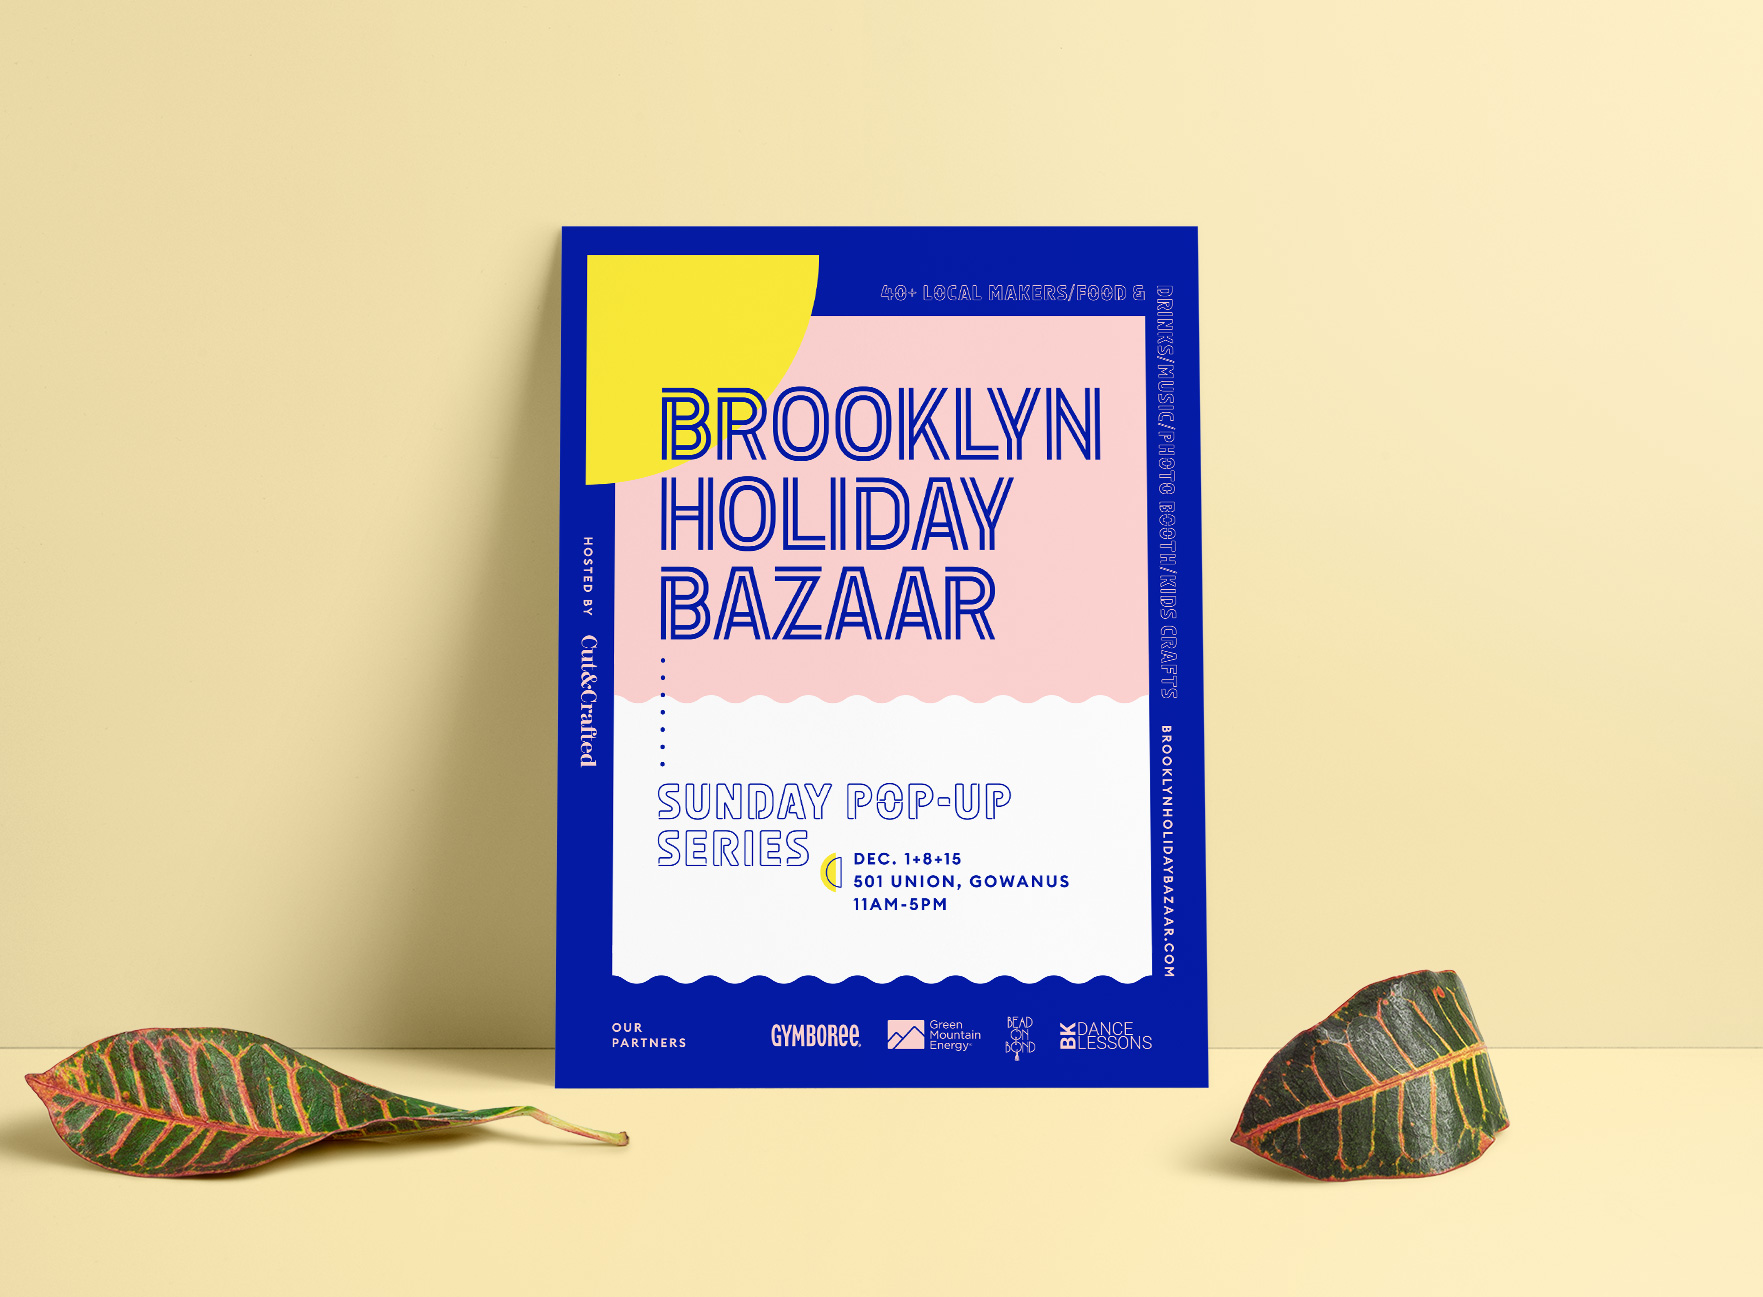 Event Collateral Design for Brooklyn Holiday Bazaar